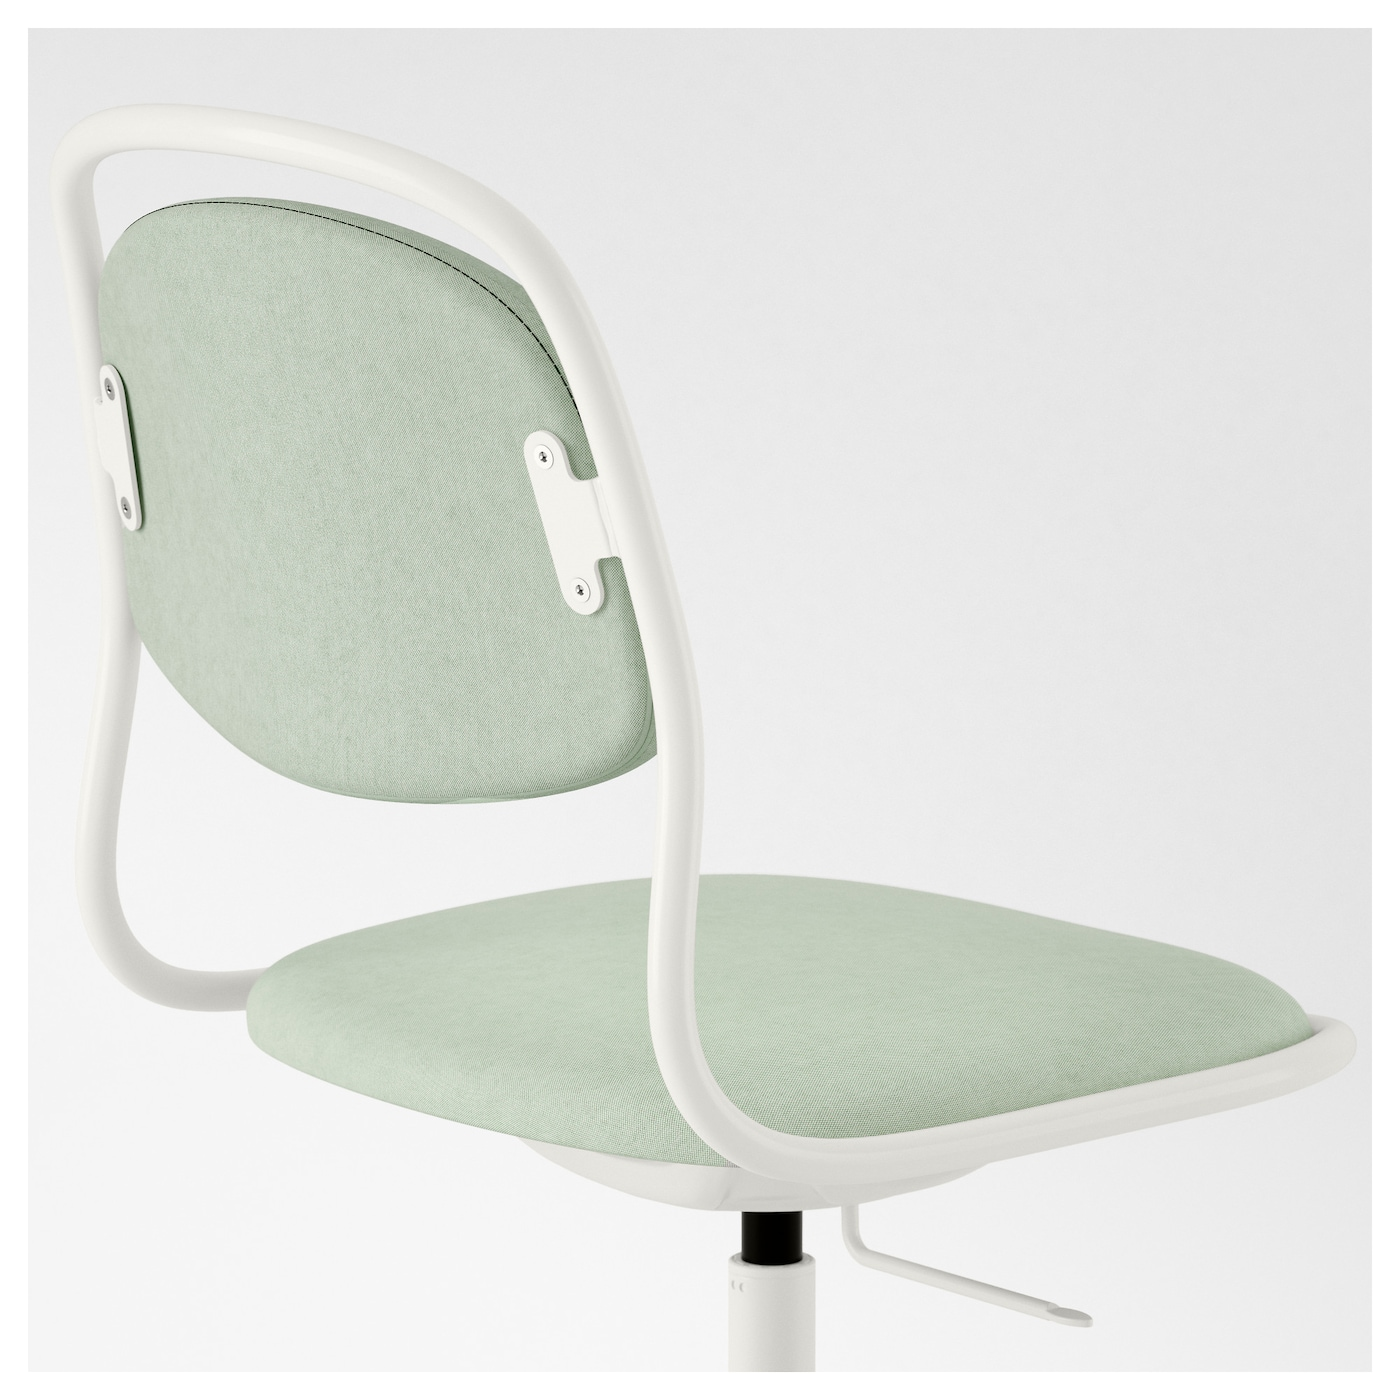 IKEA ÖRFJÄLL/SPORREN swivel chair You sit comfortably since the chair is adjustable in height.